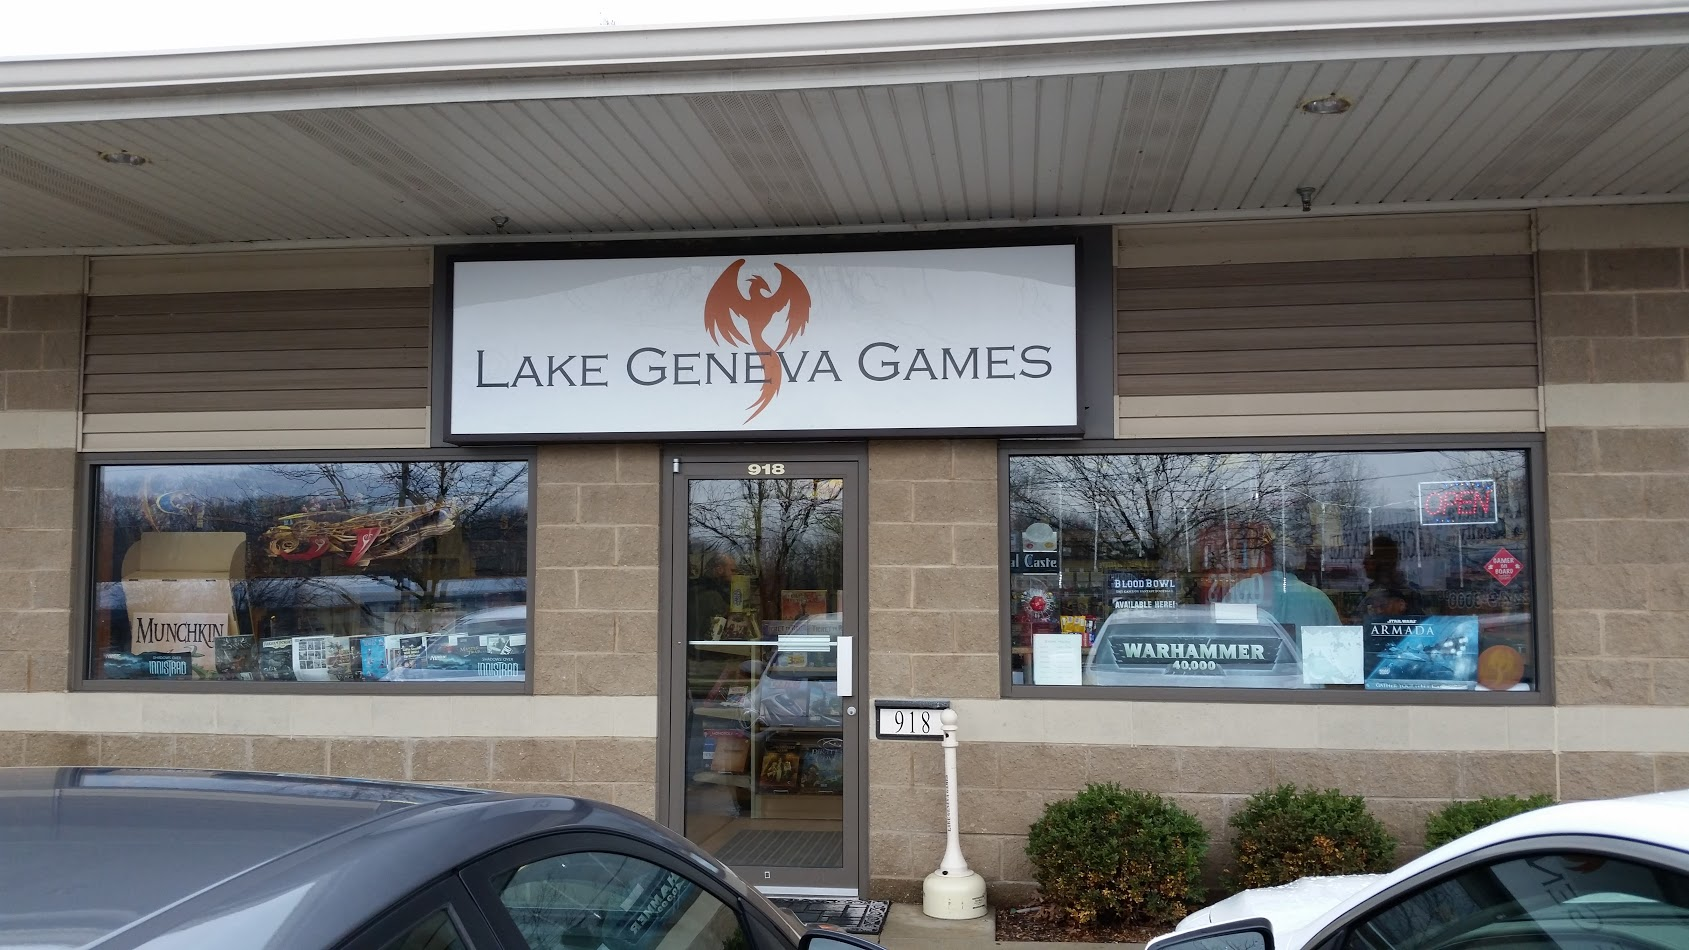 Lake Geneva Games